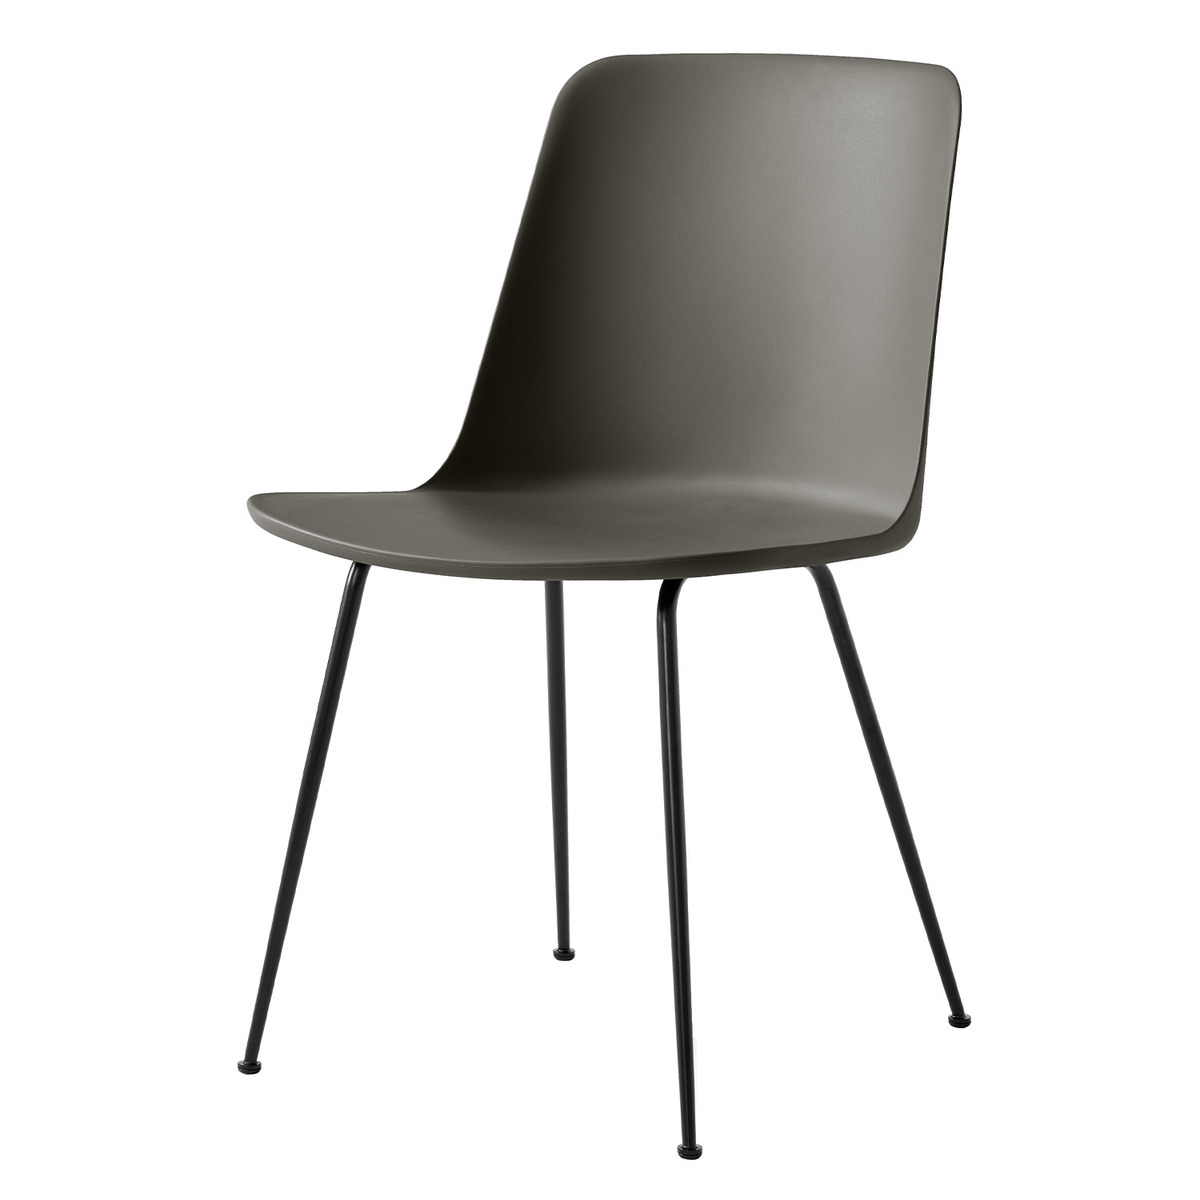 &Tradition Rely HW6 chair, black - stone grey from &Tradition